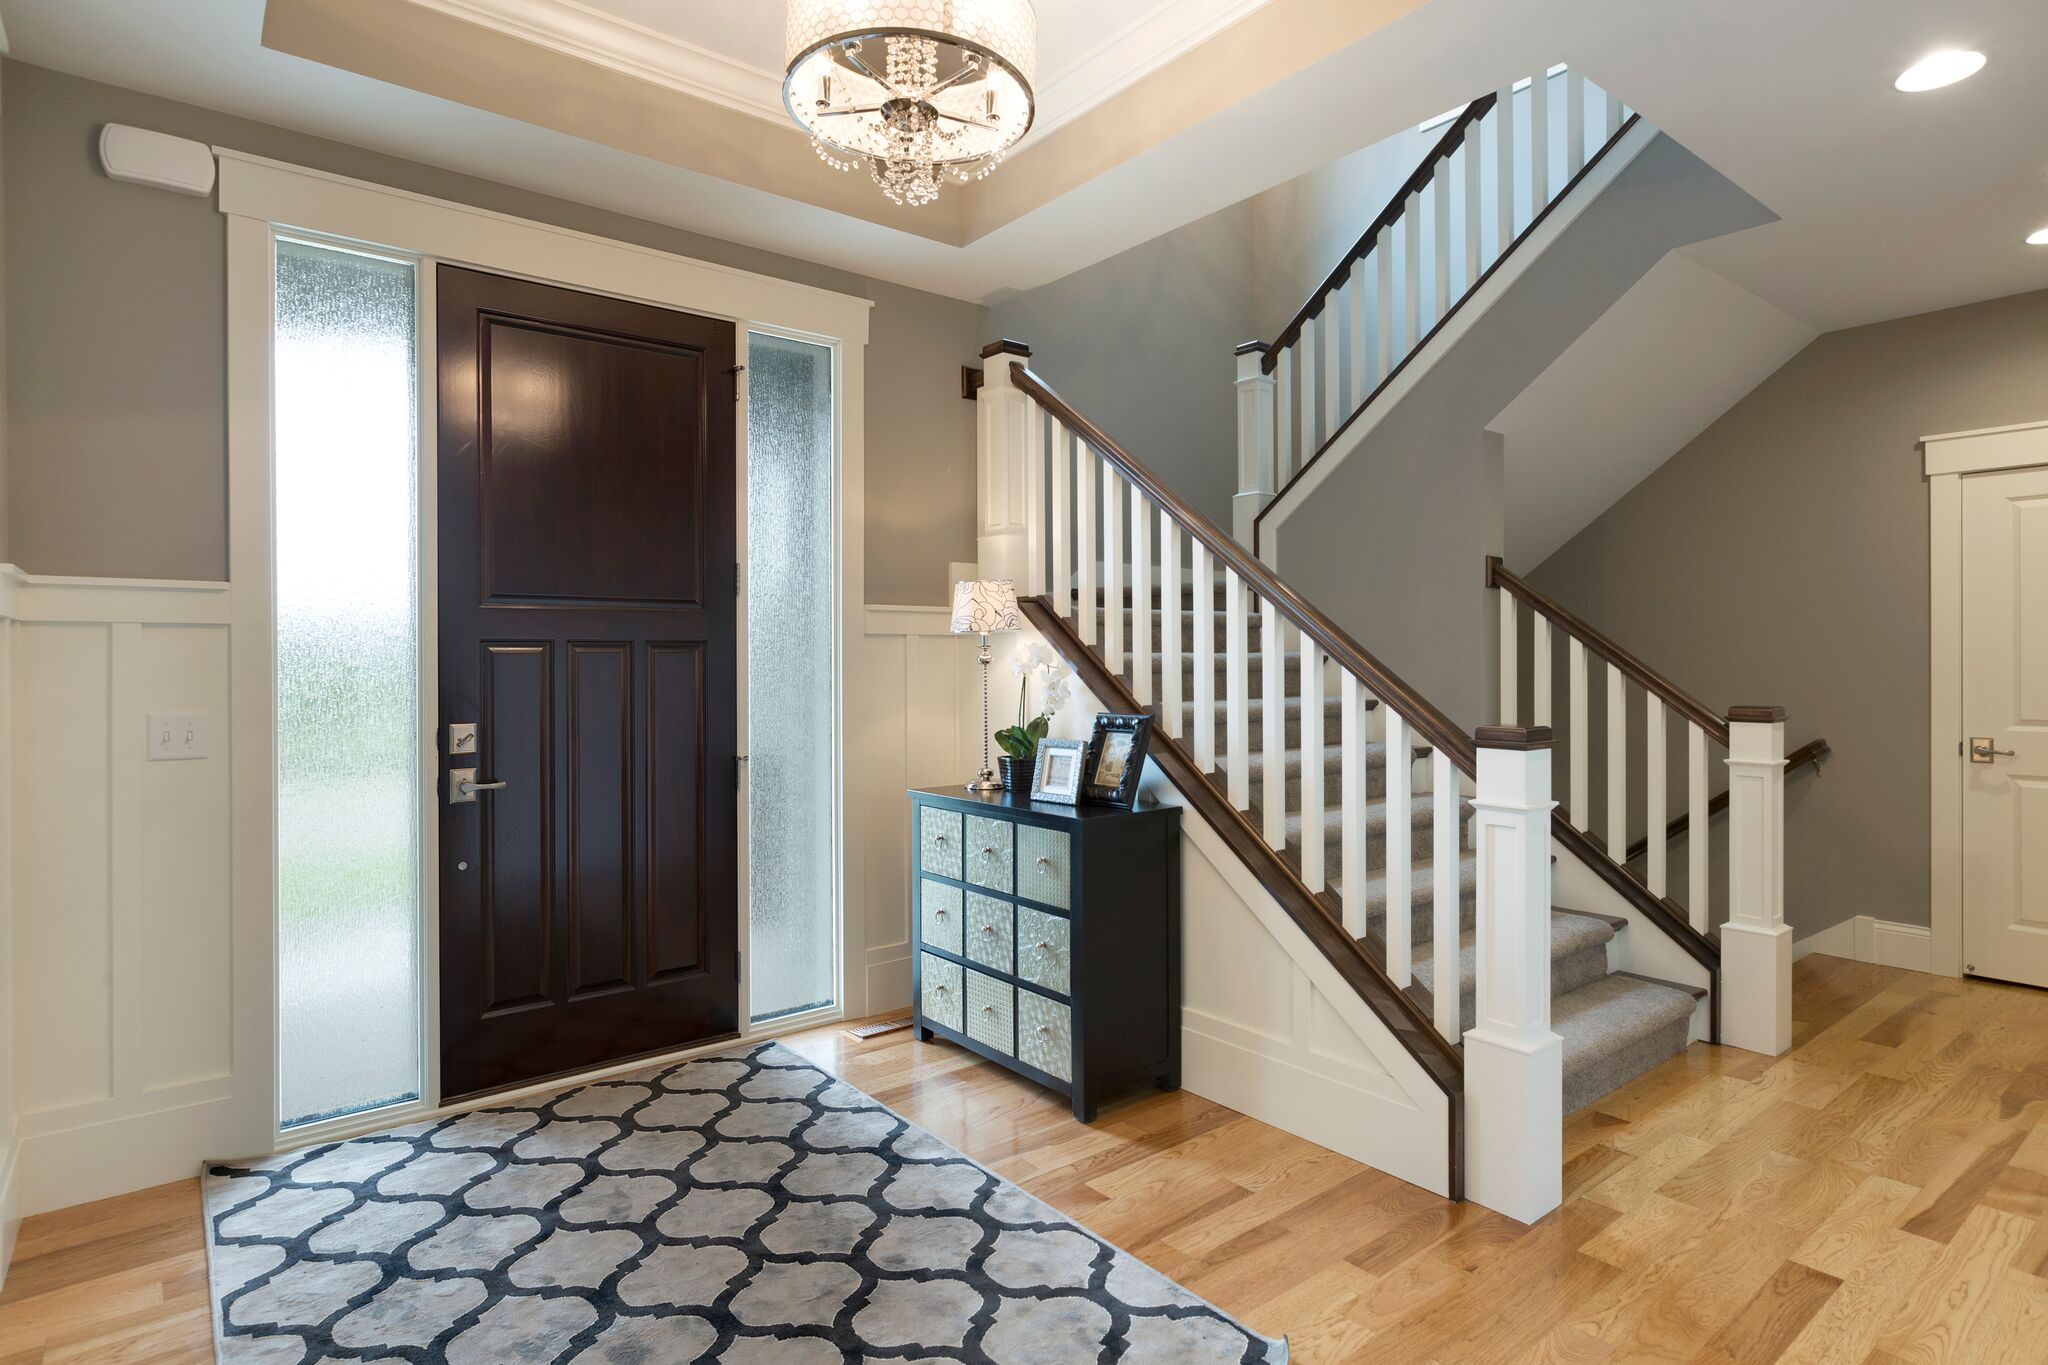 7 Tips For Creating A Welcoming Entryway